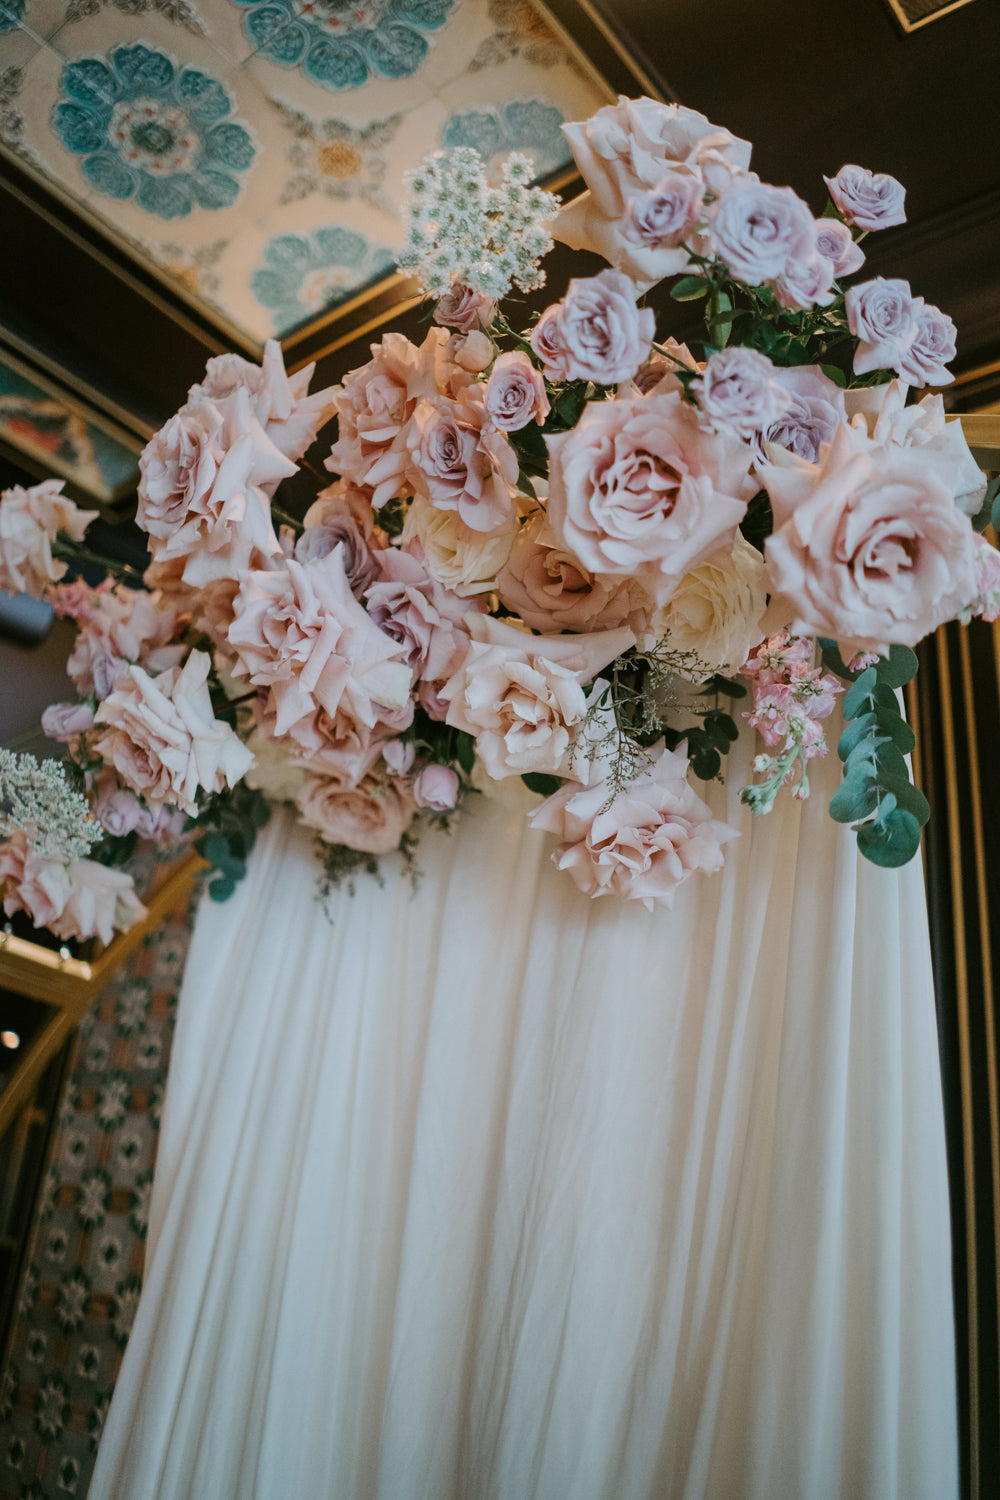 Floral arrangement for circle arch at surprise fiance wedding proposal with dusty pink floral palette and eucalyptus in front of white drape cloth